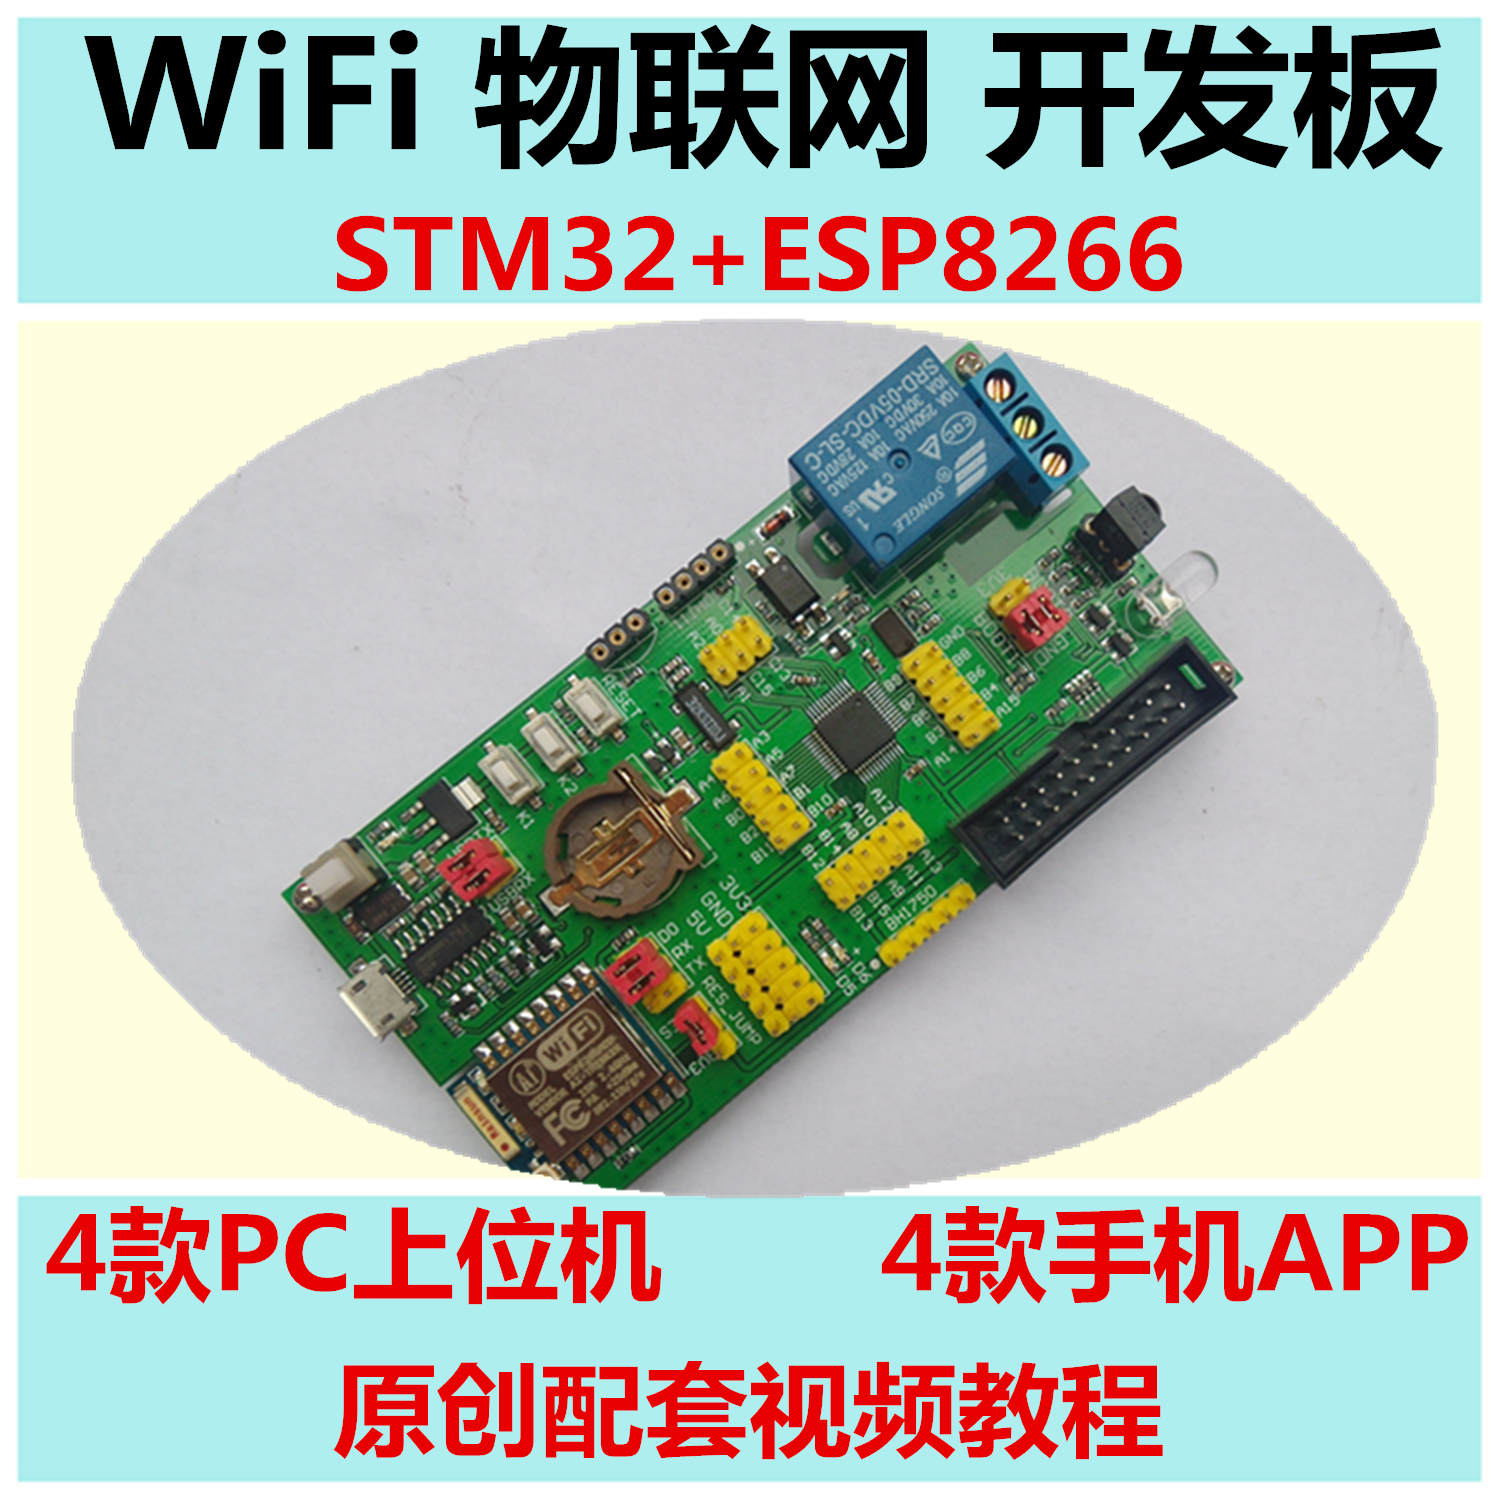 Internet of things WIFI development board remote control cloud server STM32 development board ESP8266 esp8266 iot internet of things sdk source code android app source code smart home wifi development board with tutorials